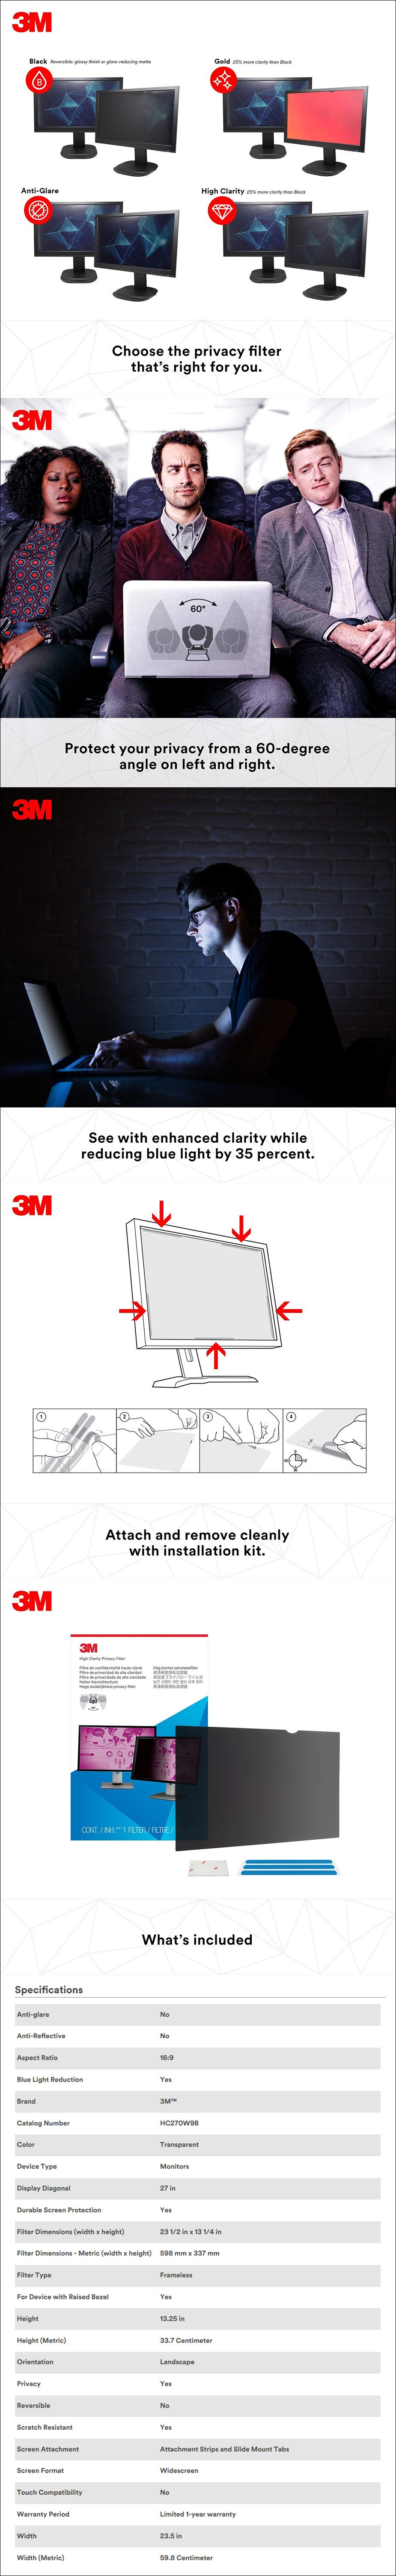 "3M HC270W9B High Clarity Privacy Filter for 27"" Widescreen Monitors (16:9) - Desktop Overview 1"